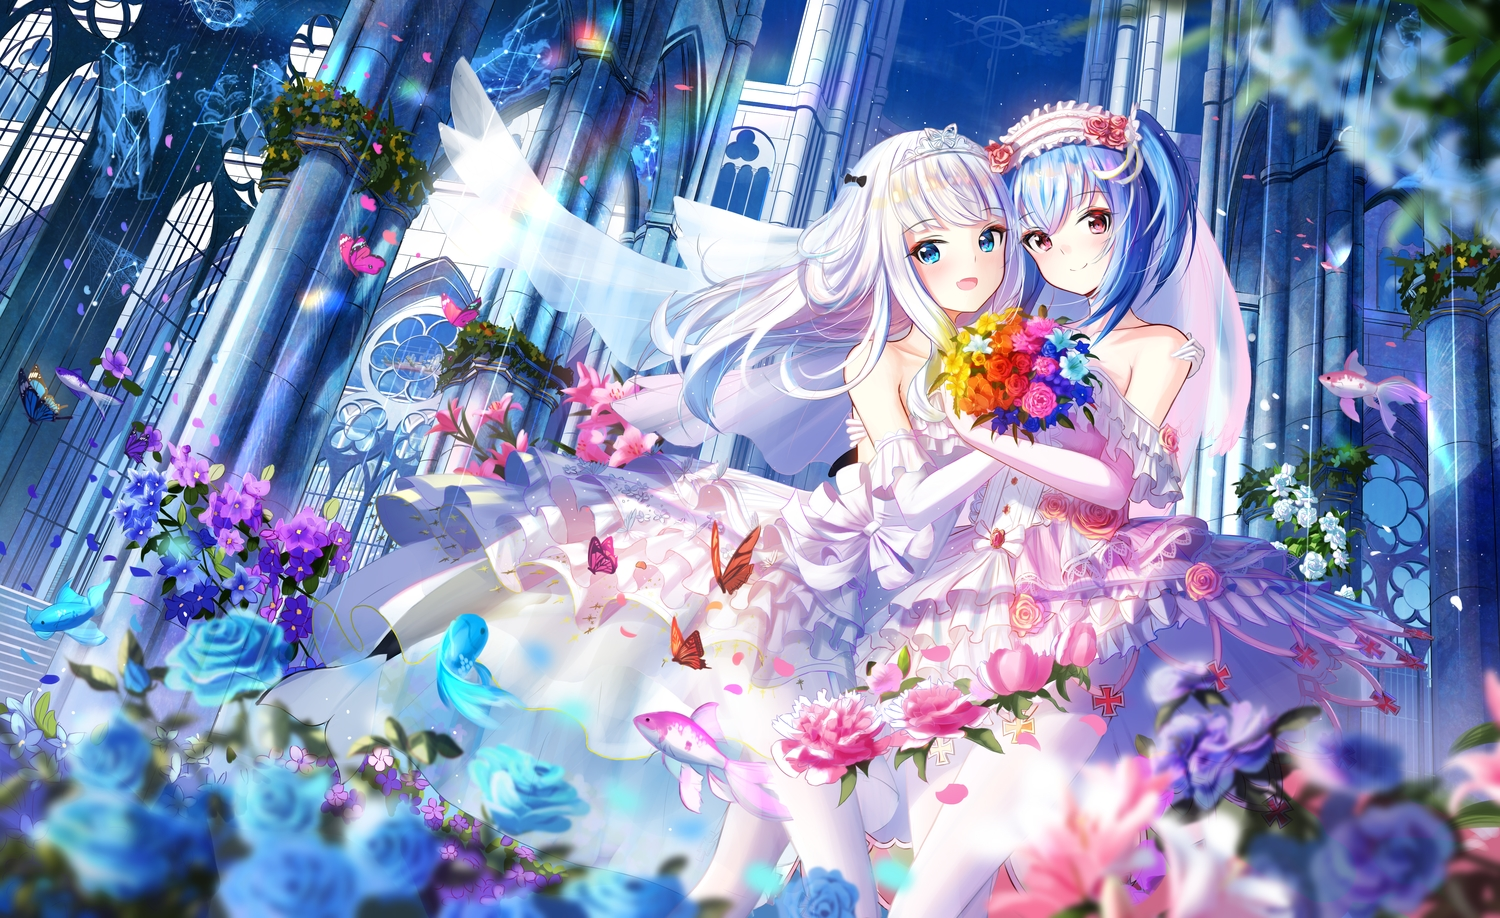 2girls animal anthropomorphism aqua_eyes aqua_hair blush building butterfly dress elbow_gloves fang fish flowers gloves headband headdress hug long_hair original prinz_eugen1938 prinz_eugen_(zhanjian_shaonu) red_eyes rose shoujo_ai stars tiara wedding wedding_attire white_hair zhanjian_shaonu